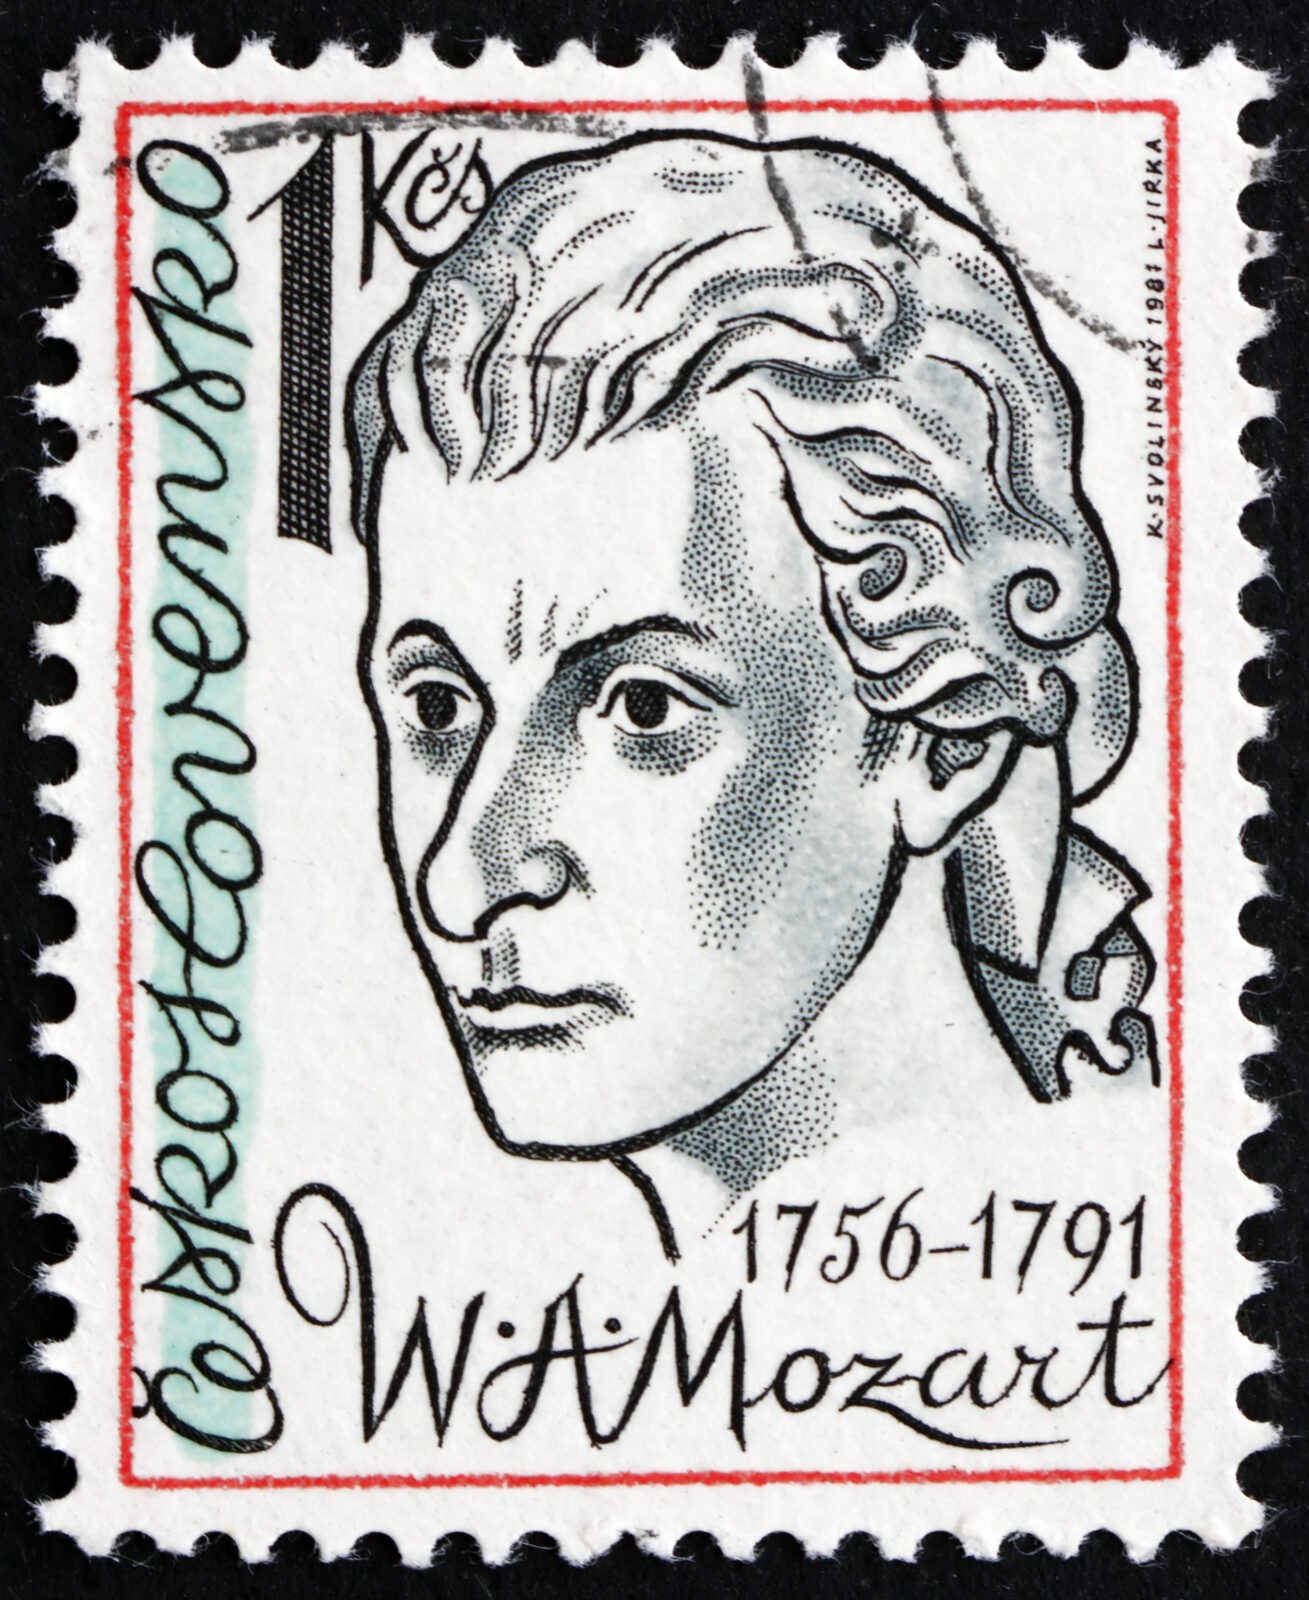 CZECHOSLOVAKIA - CIRCA 1981: a stamp printed in the Czechoslovakia shows Wolfgang Amadeus Mozart, Composer, circa 1981